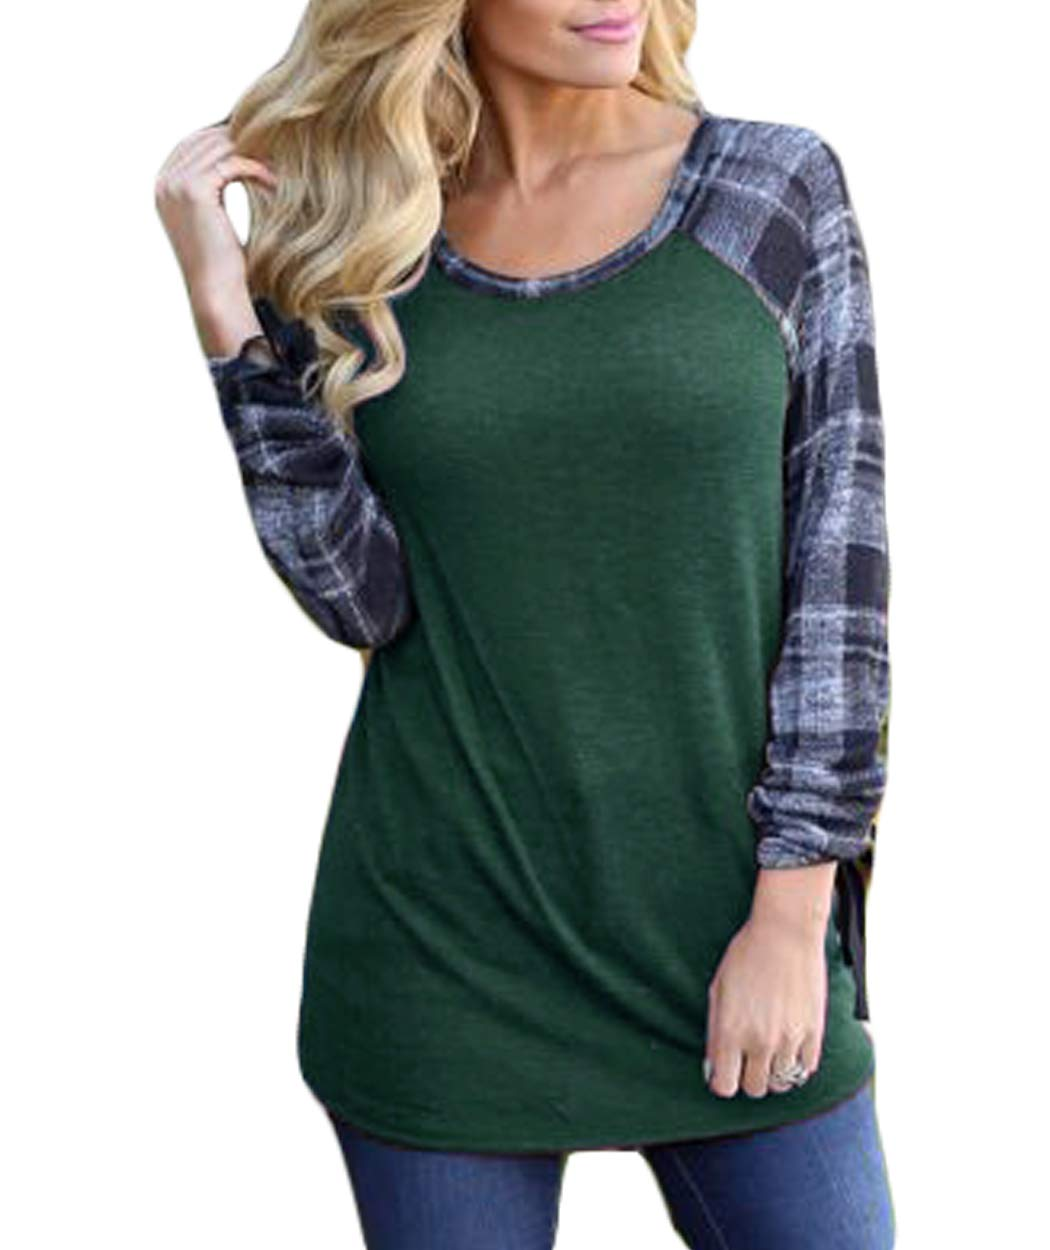 Eanklosco Women Long Sleeve Tops Plaid Patchwork Shirt Casual Round Neck Color Block Tunic Blouse (S, Green)